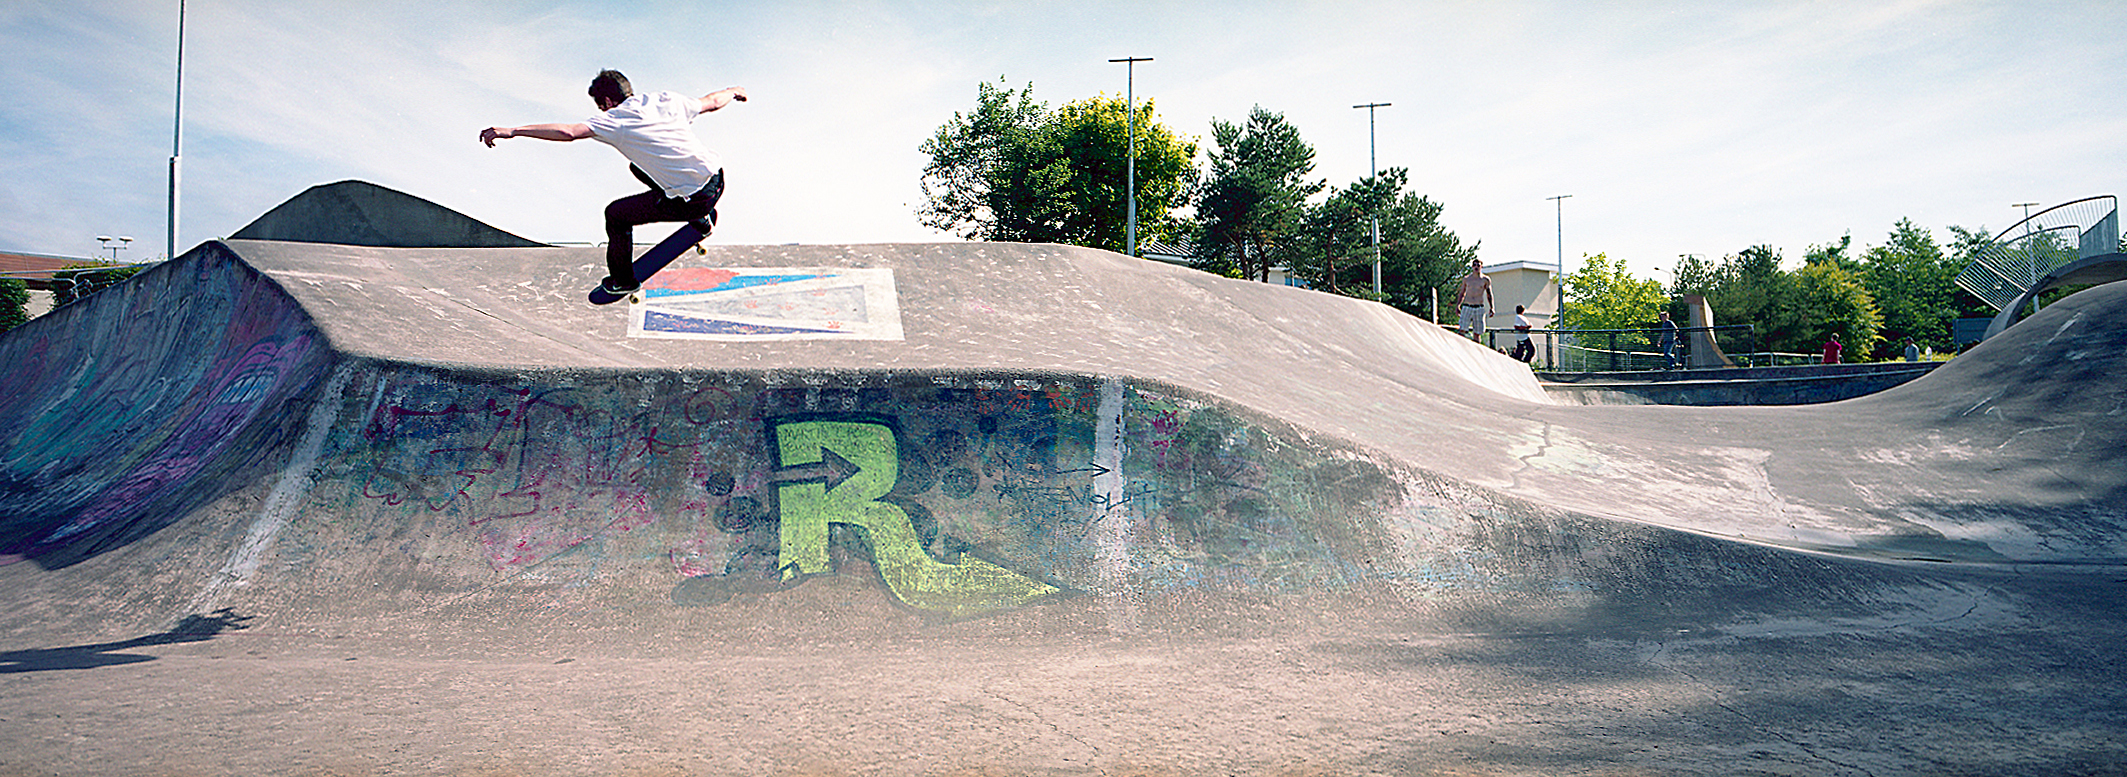 FS Ollie - Photo: Graham Tait